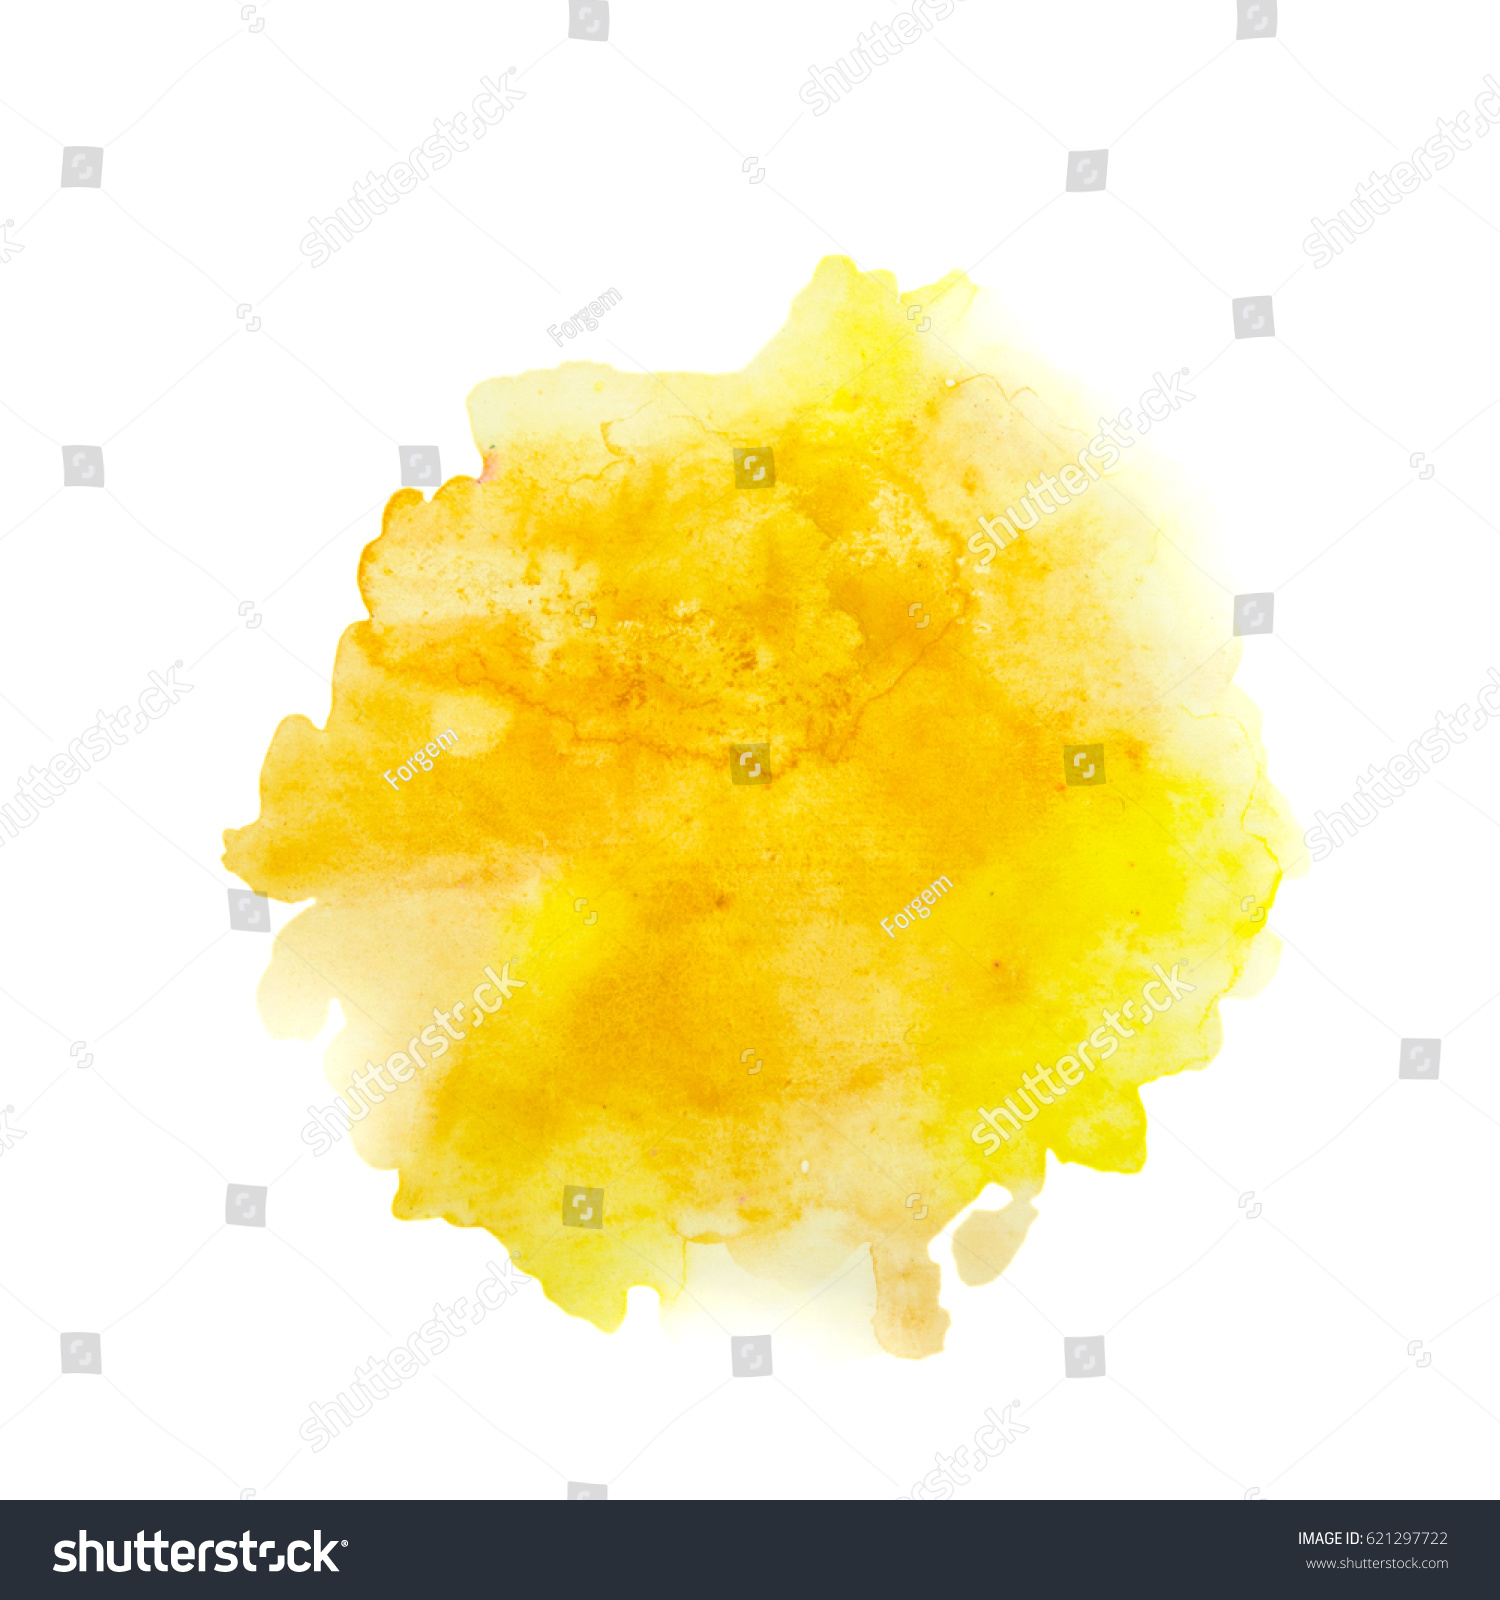 Color, yellow - orange splash watercolor hand painted isolated on white background, artistic decoration or background #621297722 - 123PhotoFree.com